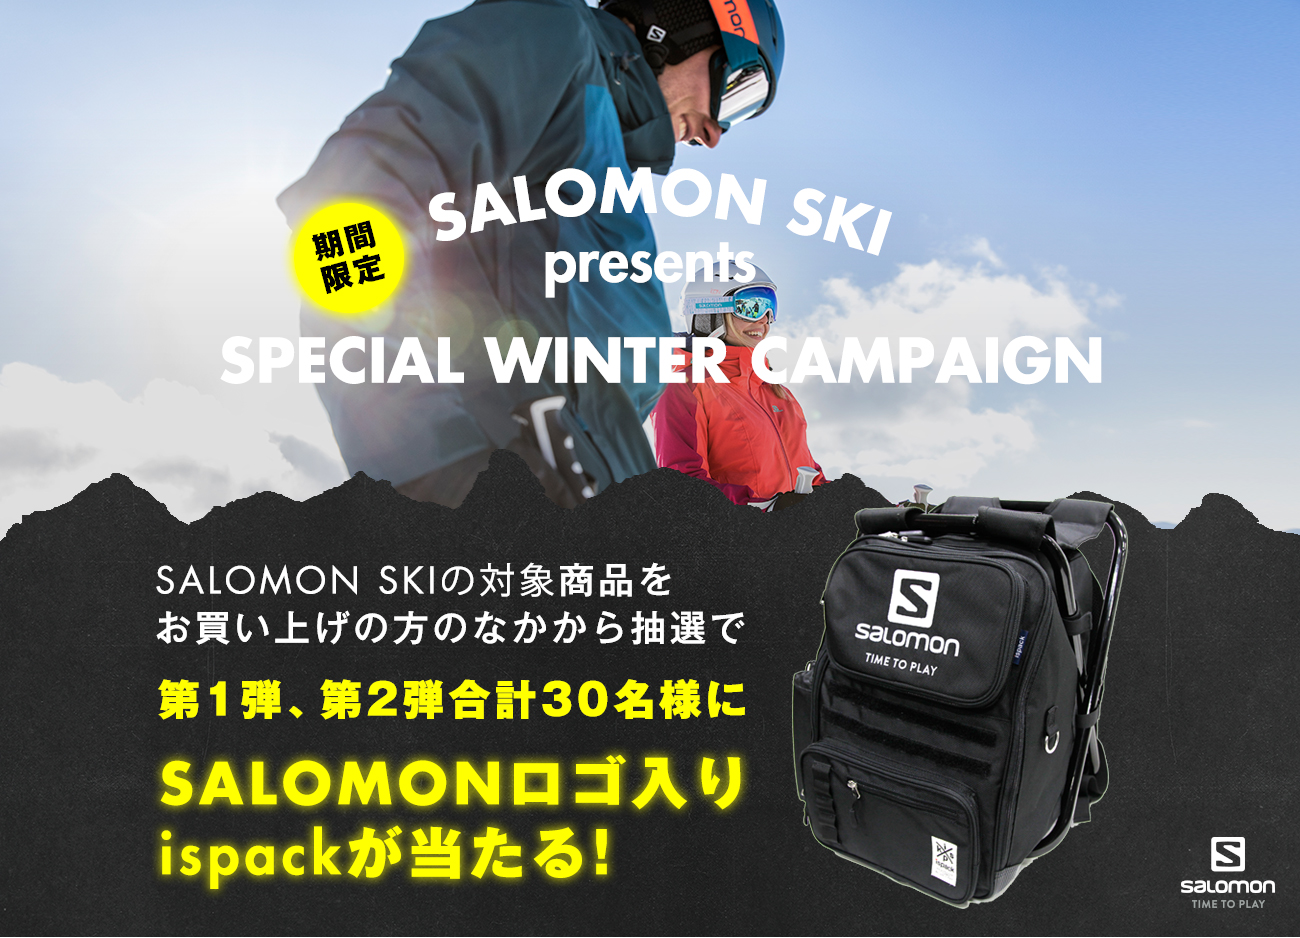 SPECIAL WINTER CAMPAIGN